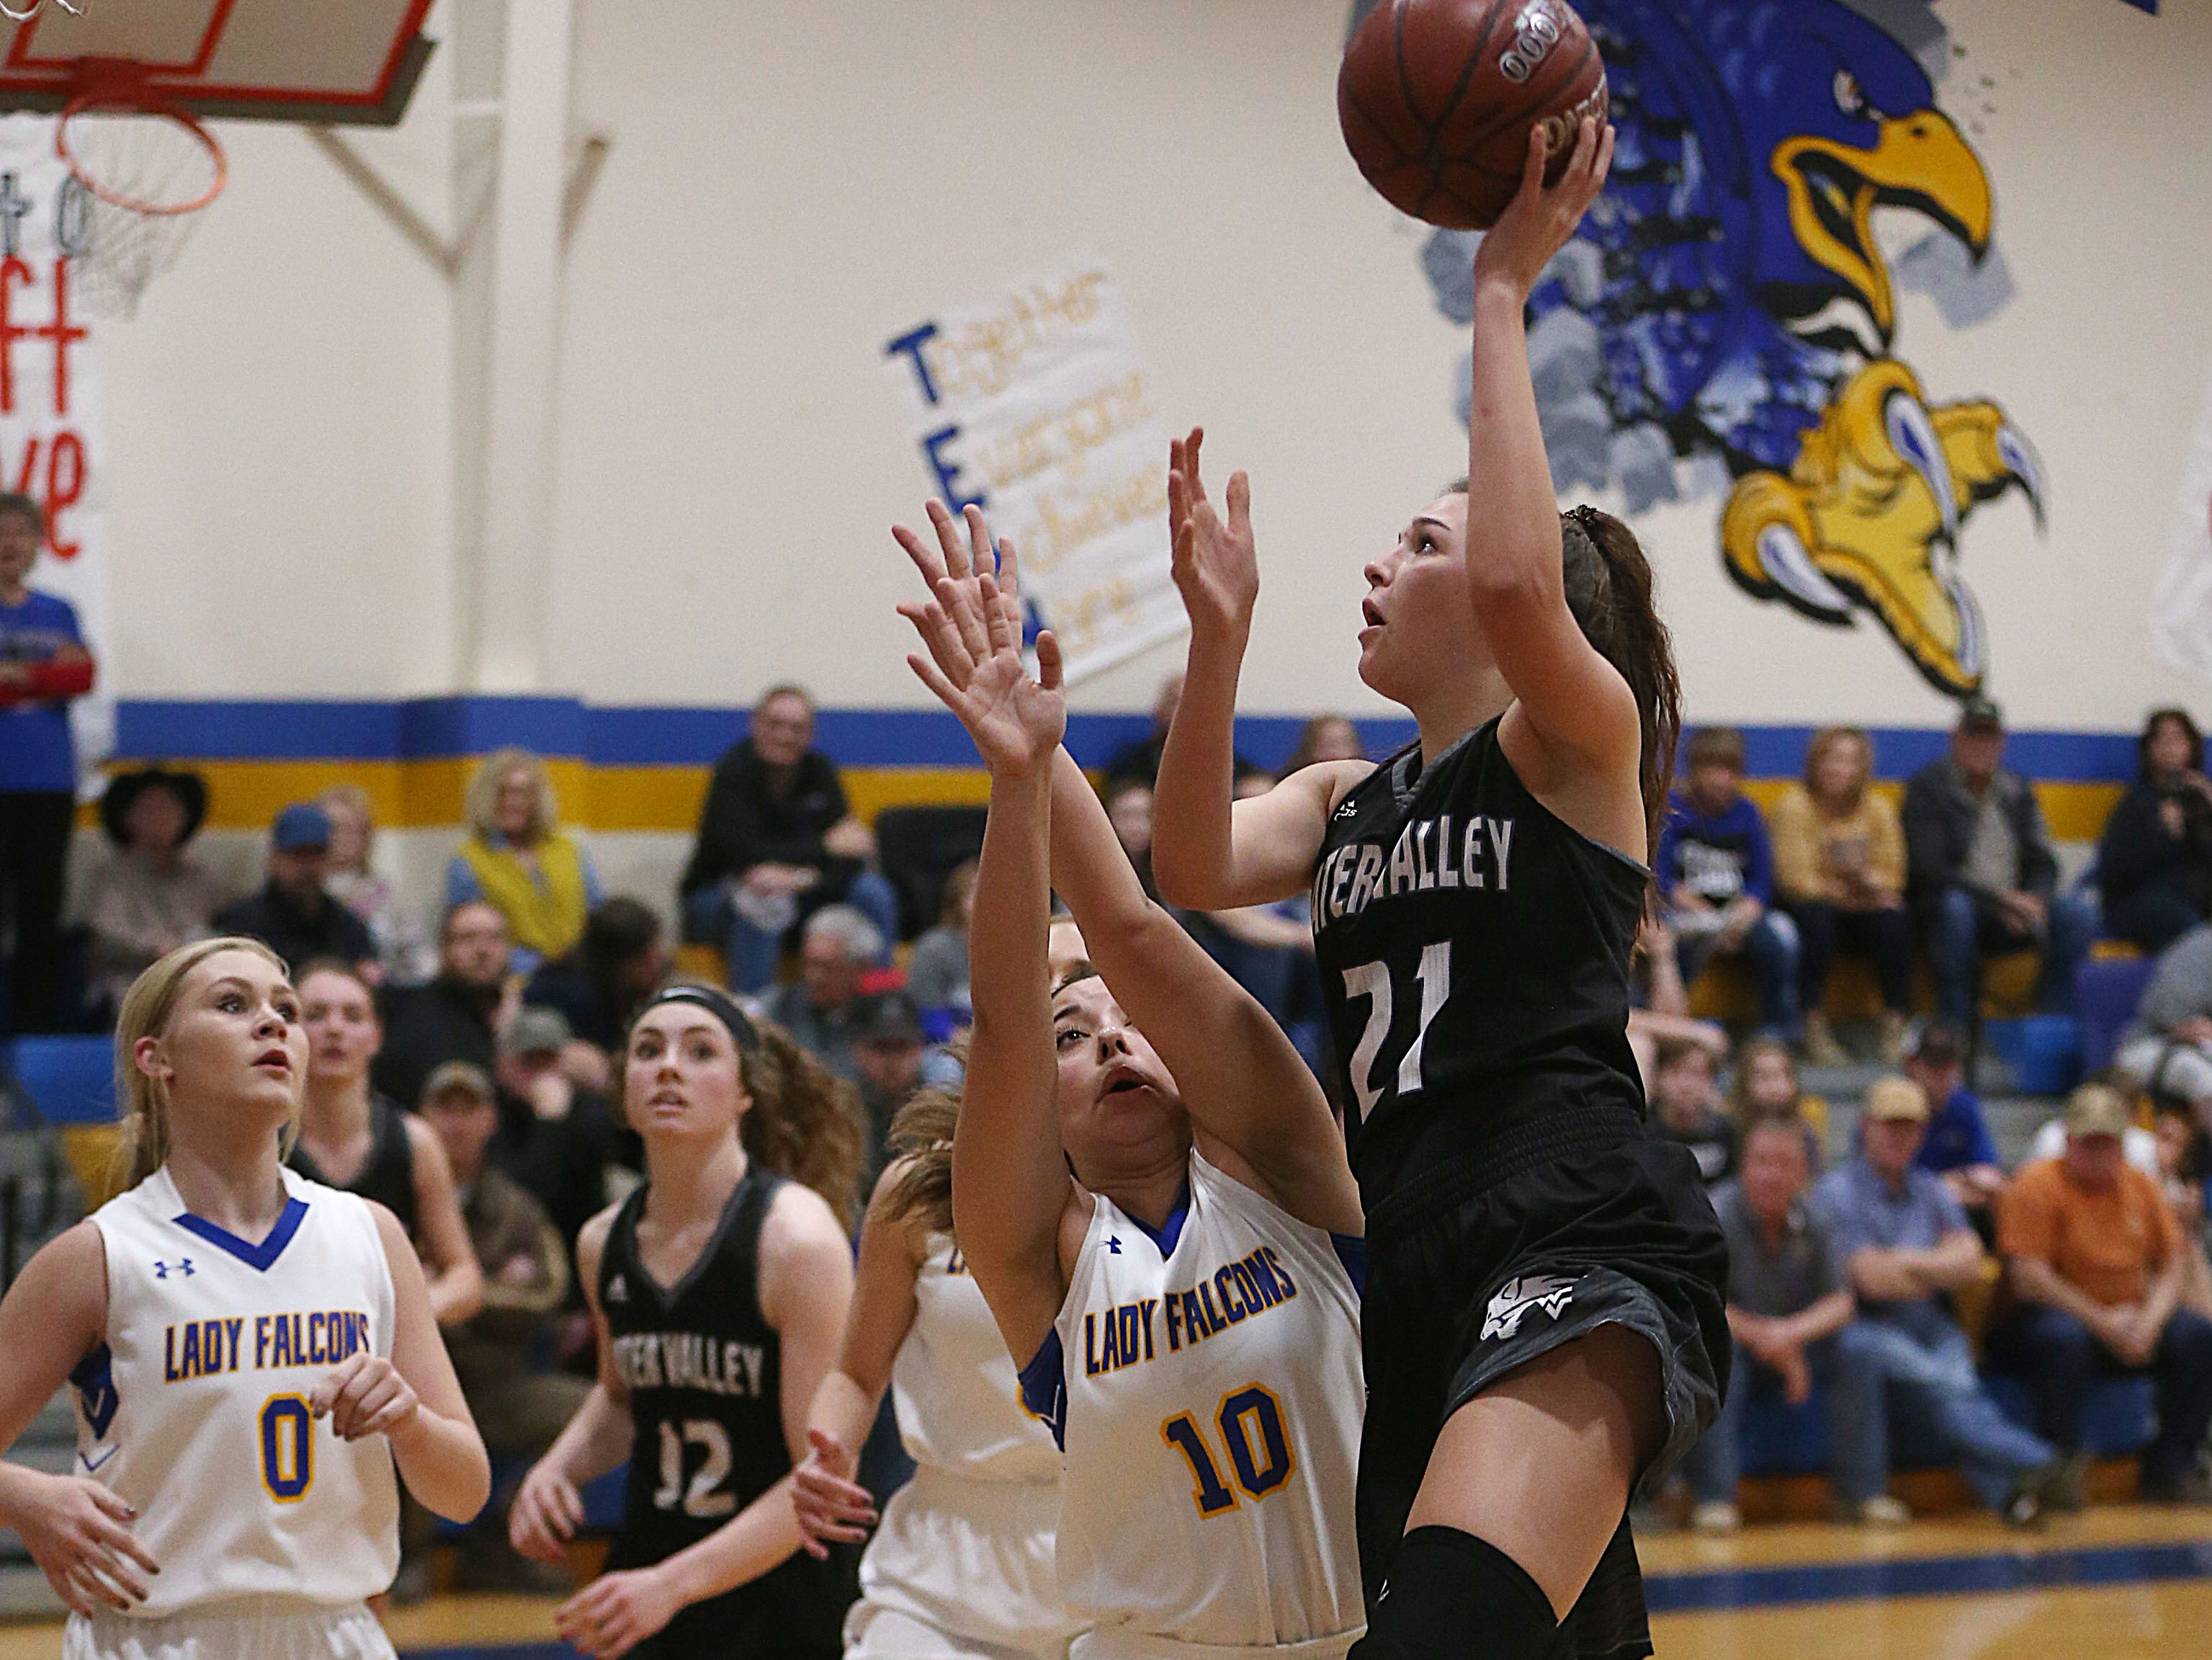 Water Valley's Bailey Dawson (#21) shoots a basket over Veribest's C. Hererra (#10) Tuesday, Jan. 8, 2019 during their game in Veribest.